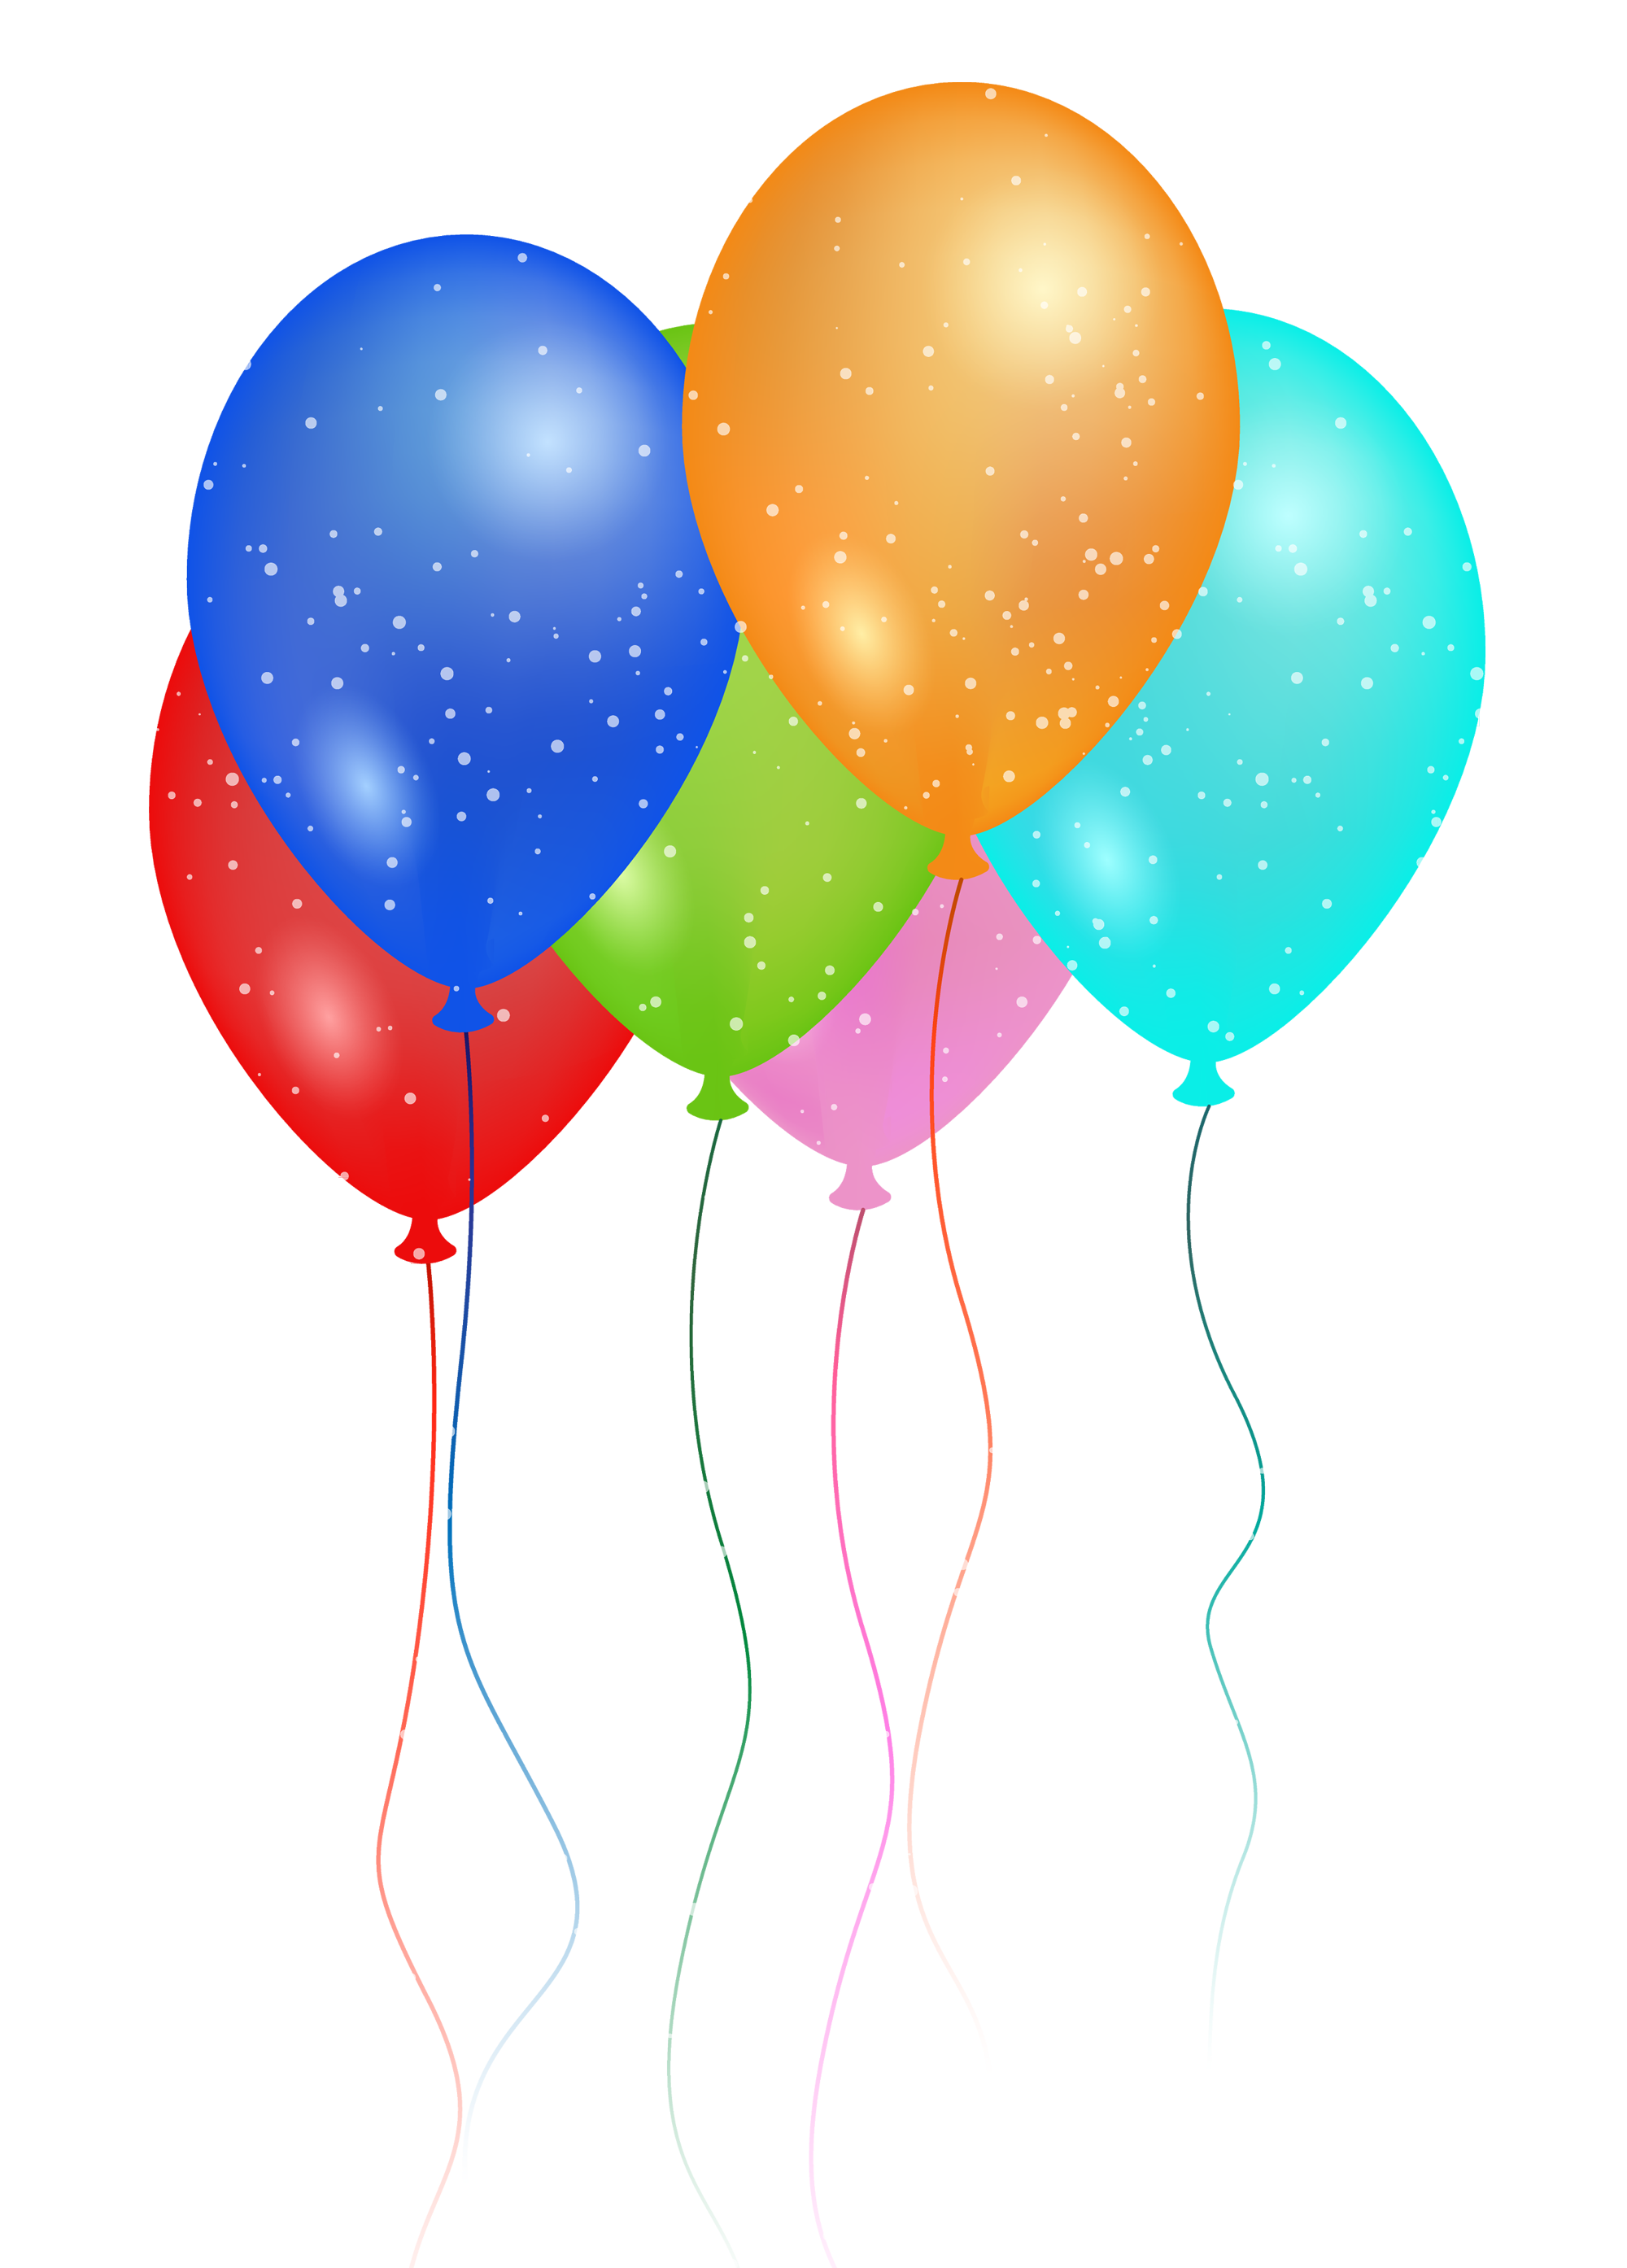 Party ballons png. Birthday balloon image free